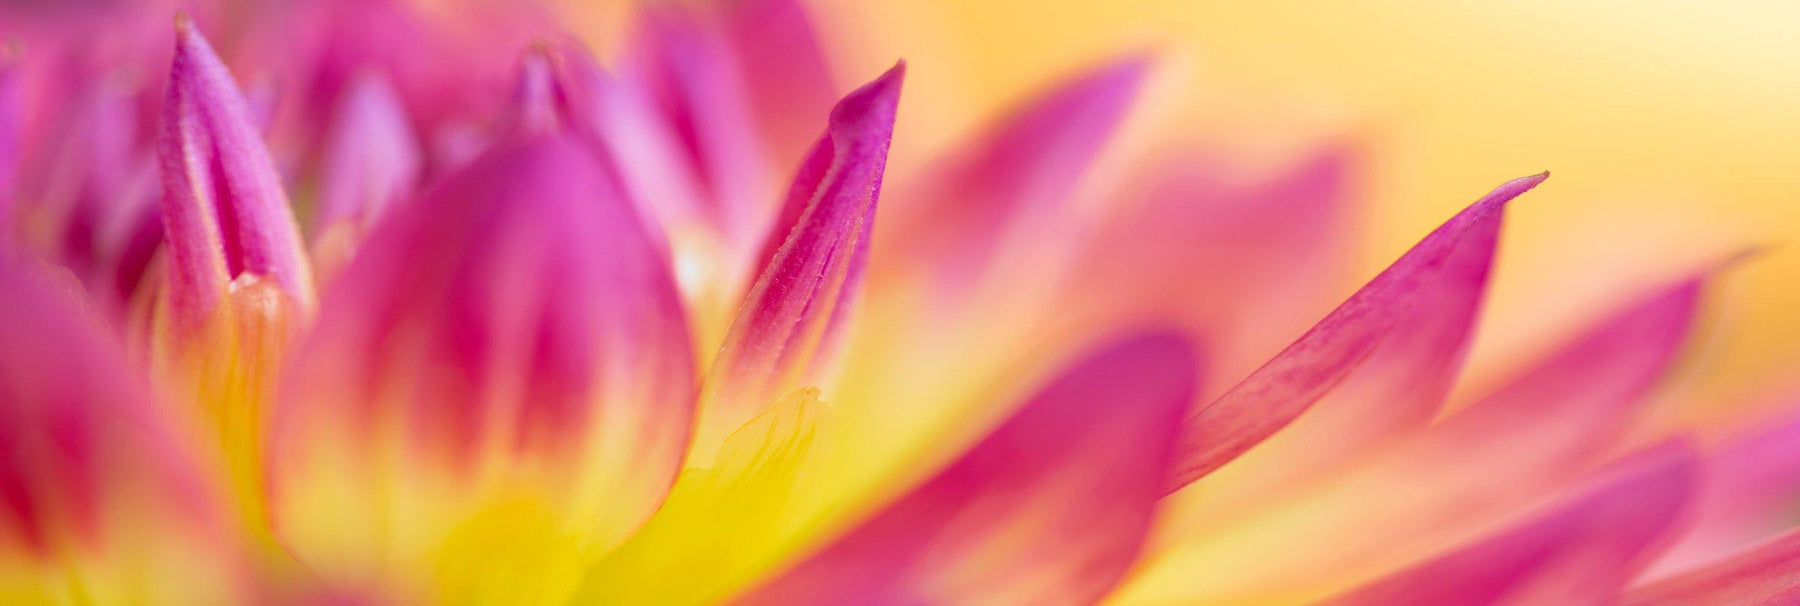 Close up of the pink and yellow petals of a spring flower